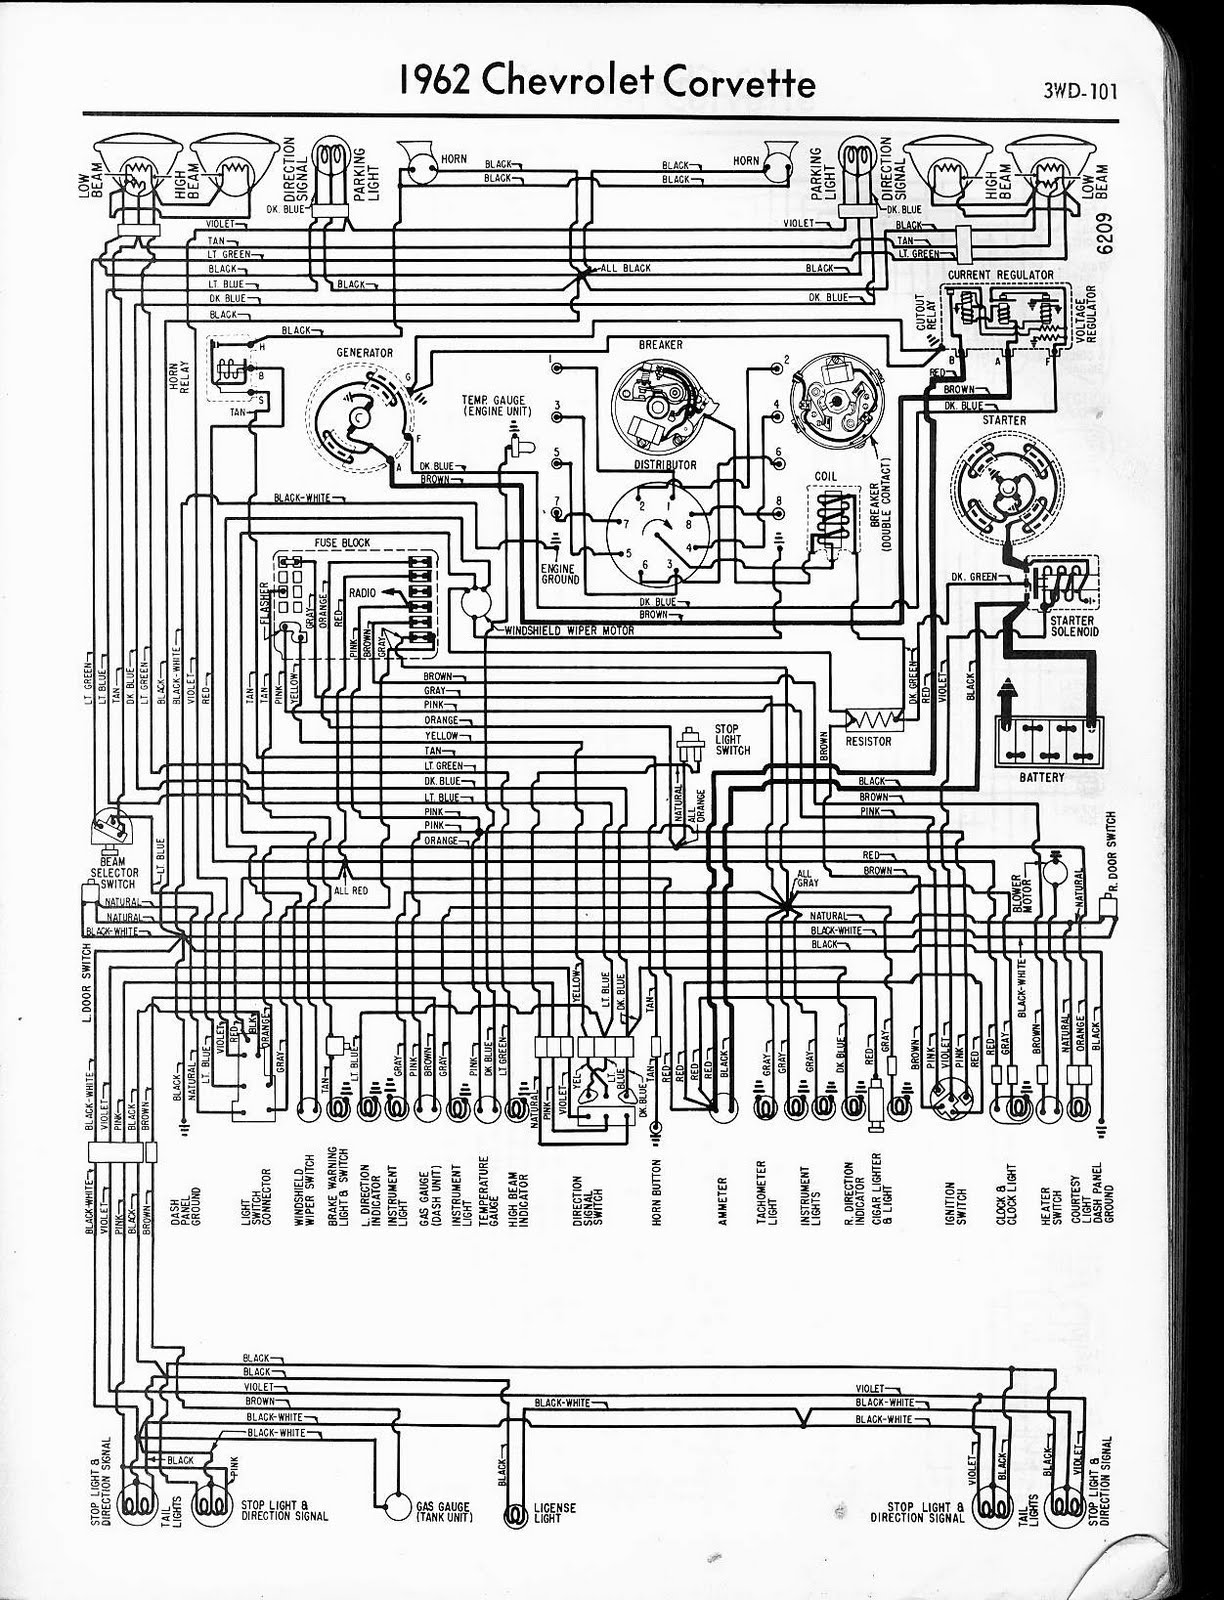 [SCHEMATICS_48DE]  Free Corvette Wiring Diagram Diagram Base Website Wiring Diagram -  VENNDIAGRAMILLUSTRATOR.SPEAKEASYBARI.IT | 1966 Corvette Wiring Diagram Free |  | speakeasybari.it